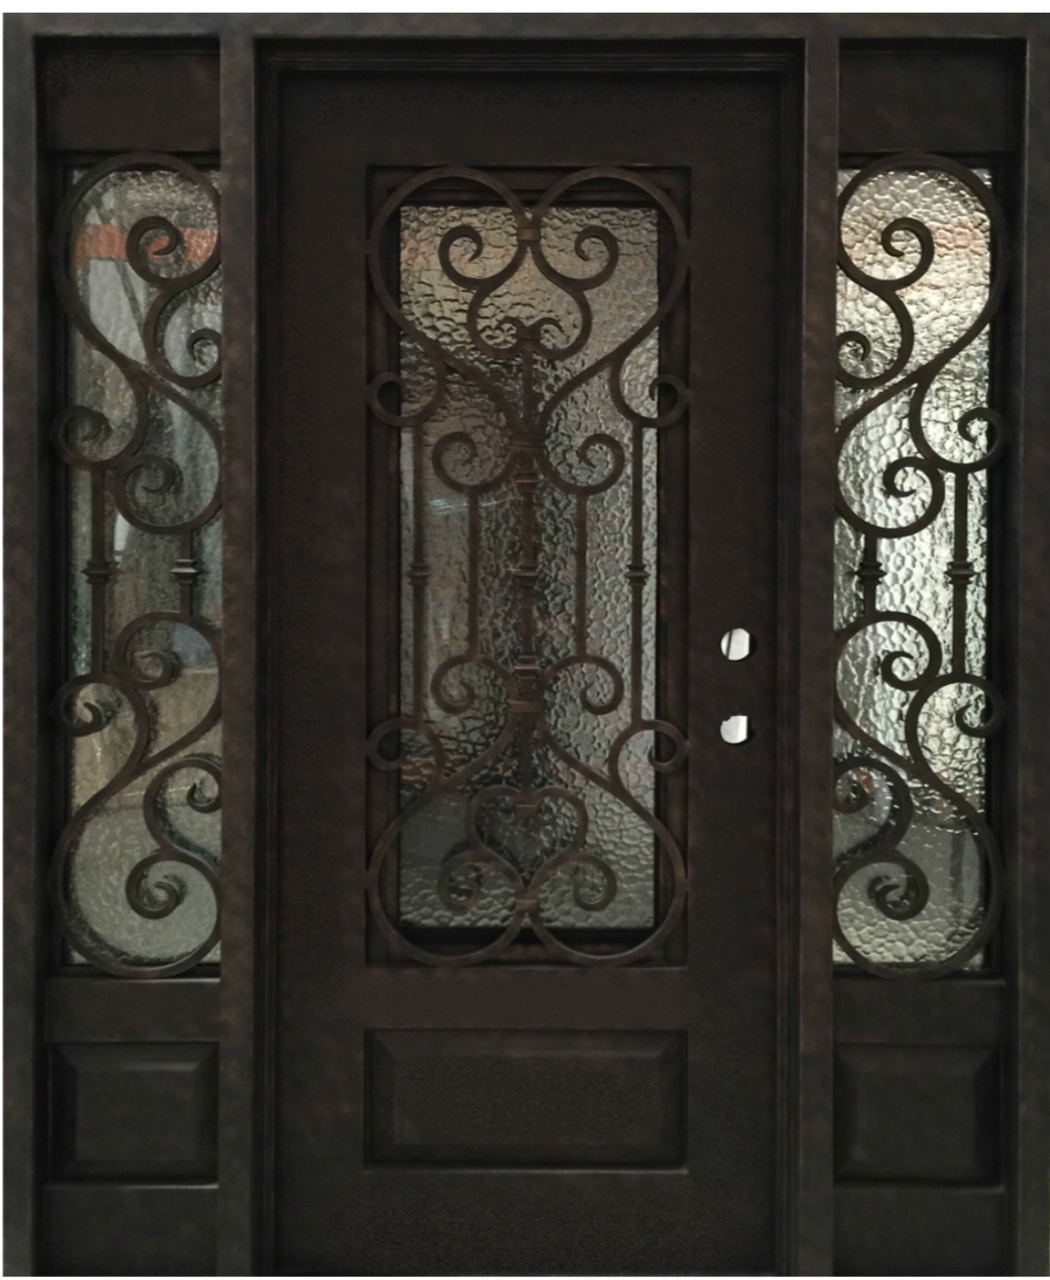 Wrought Iron for Beauty, Security, Durability, and More